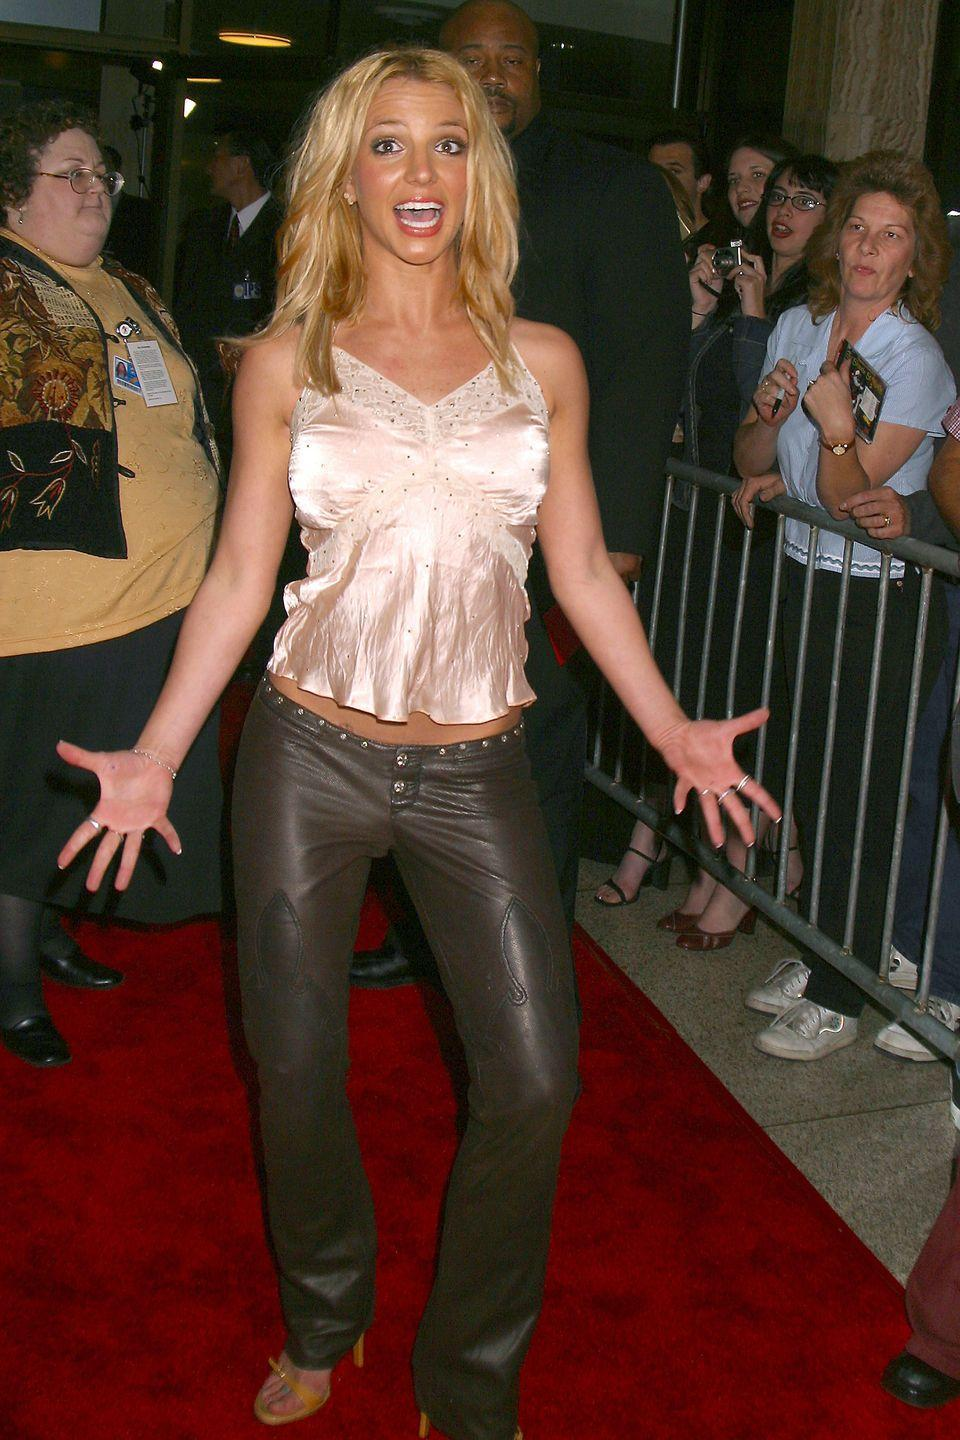 <p>Here, Brit wears low-rise leather pants, a lacy camisole, and strappy sandals to a red-carpet event.</p>